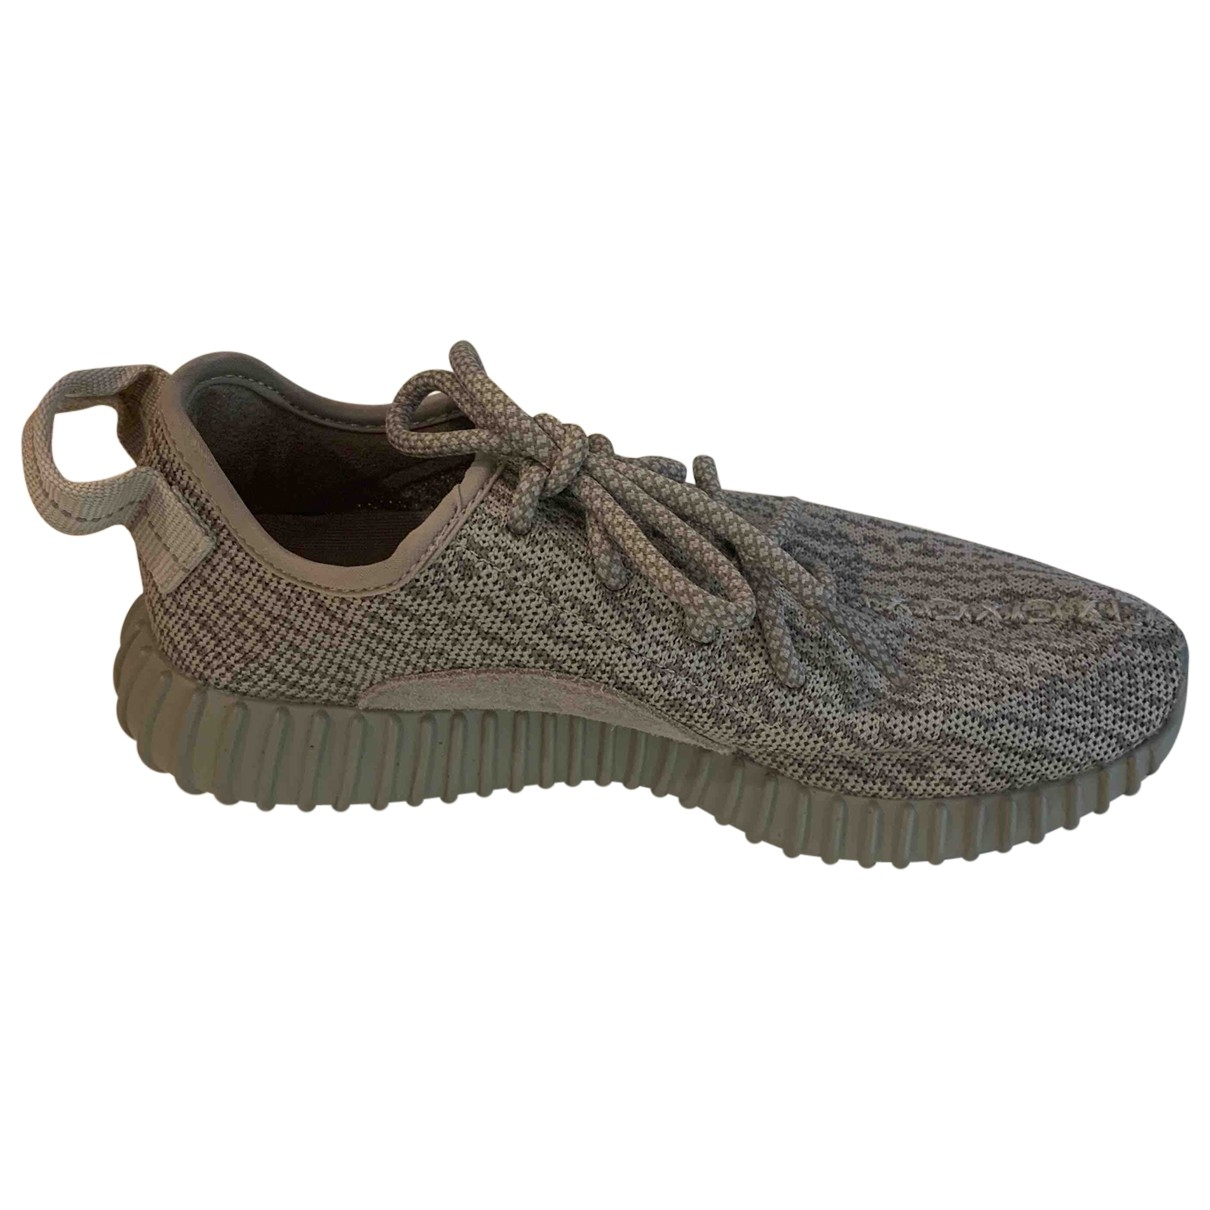 Yeezy X Adidas Boost 350 V1 Cloth Trainers for Women 4 UK